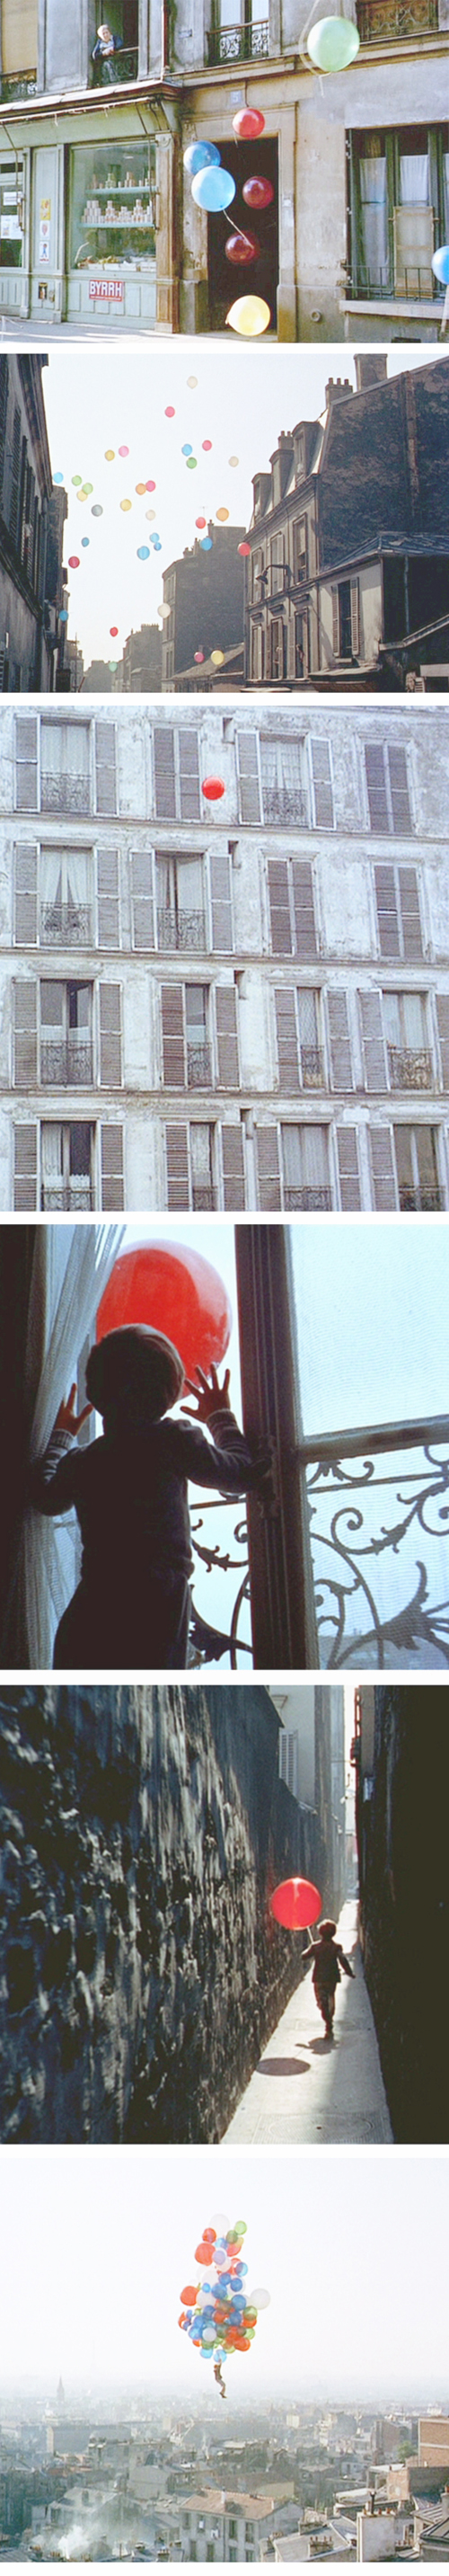 le-ballon-rouge-by-albert-lamorisse-1956.jpg